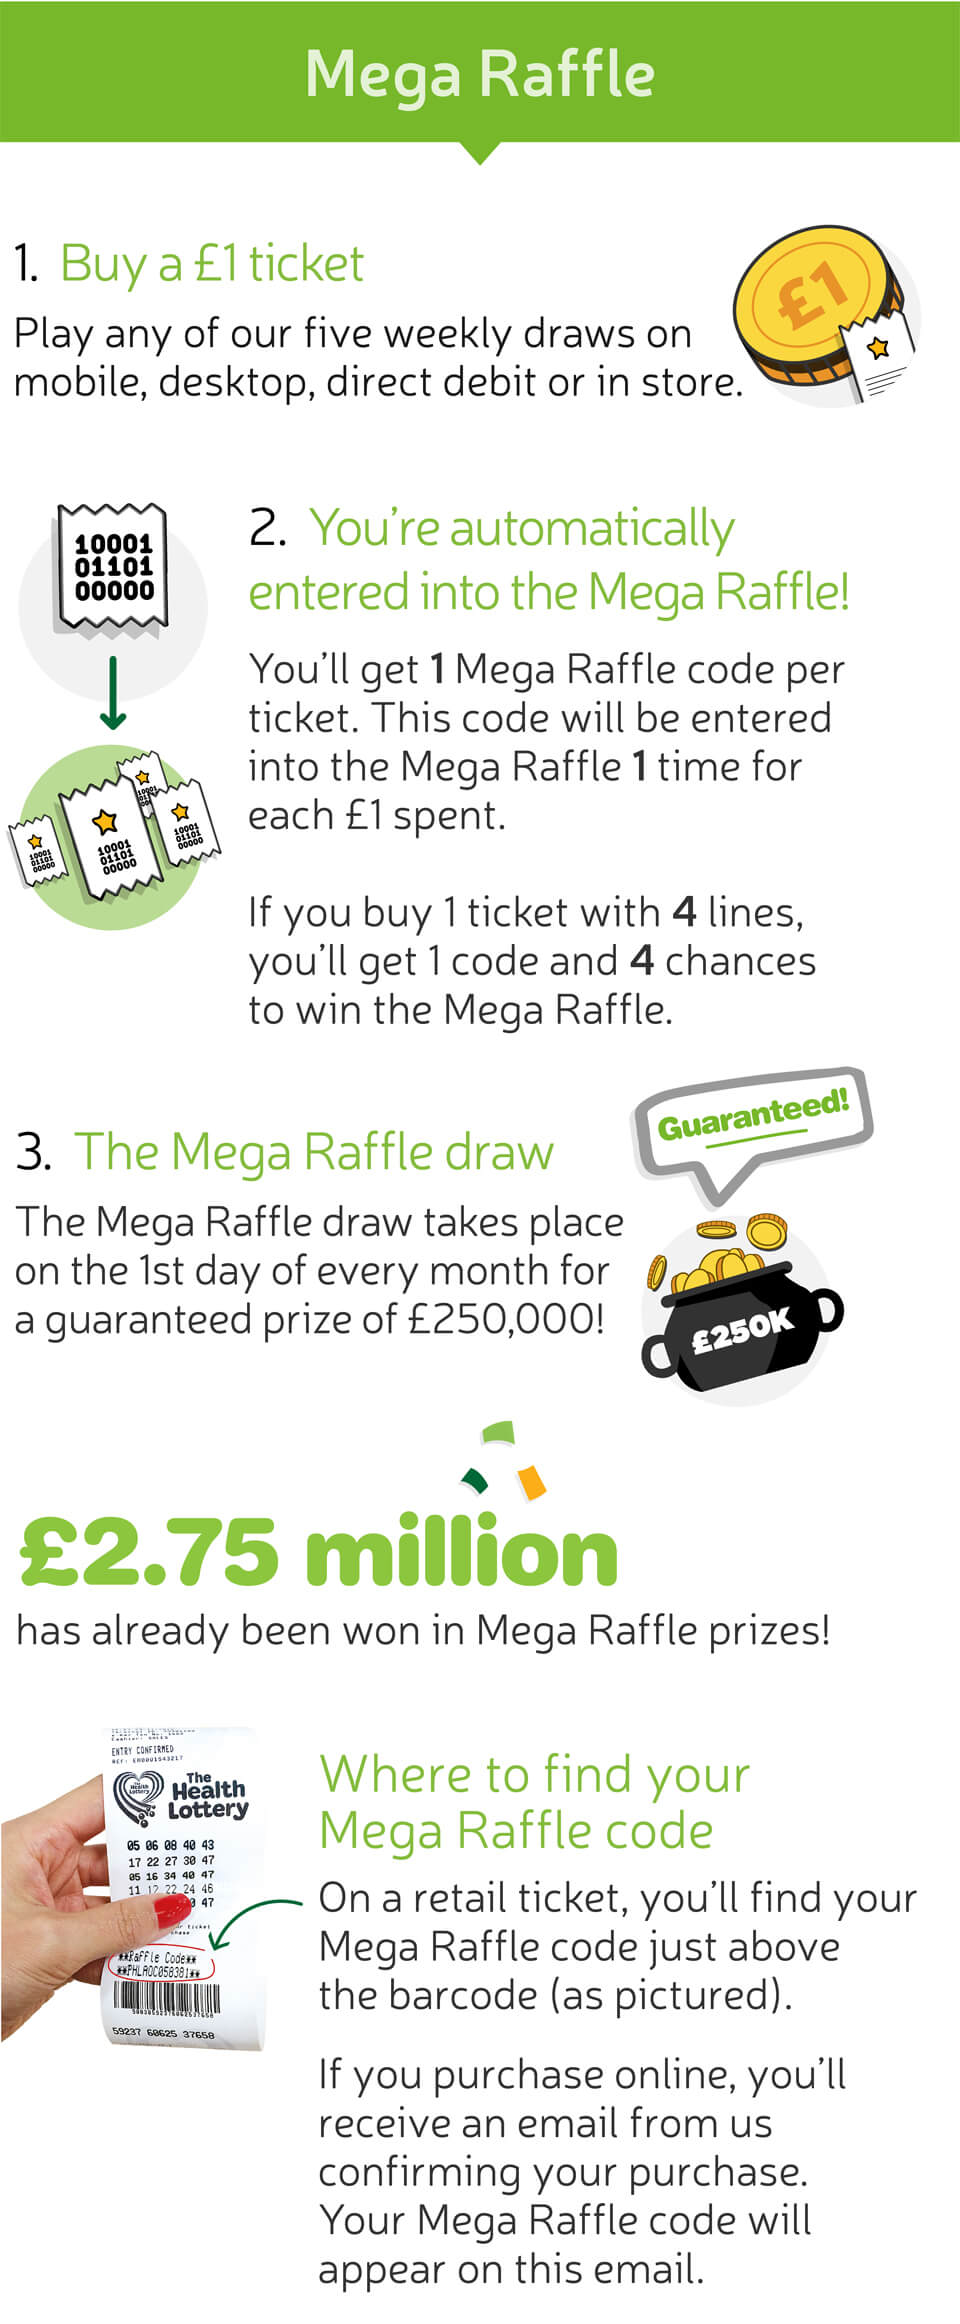 Mega Raffle | Buy a £1 ticket - you're automatically entered into the Mega Raffle! £2.75 million already won.